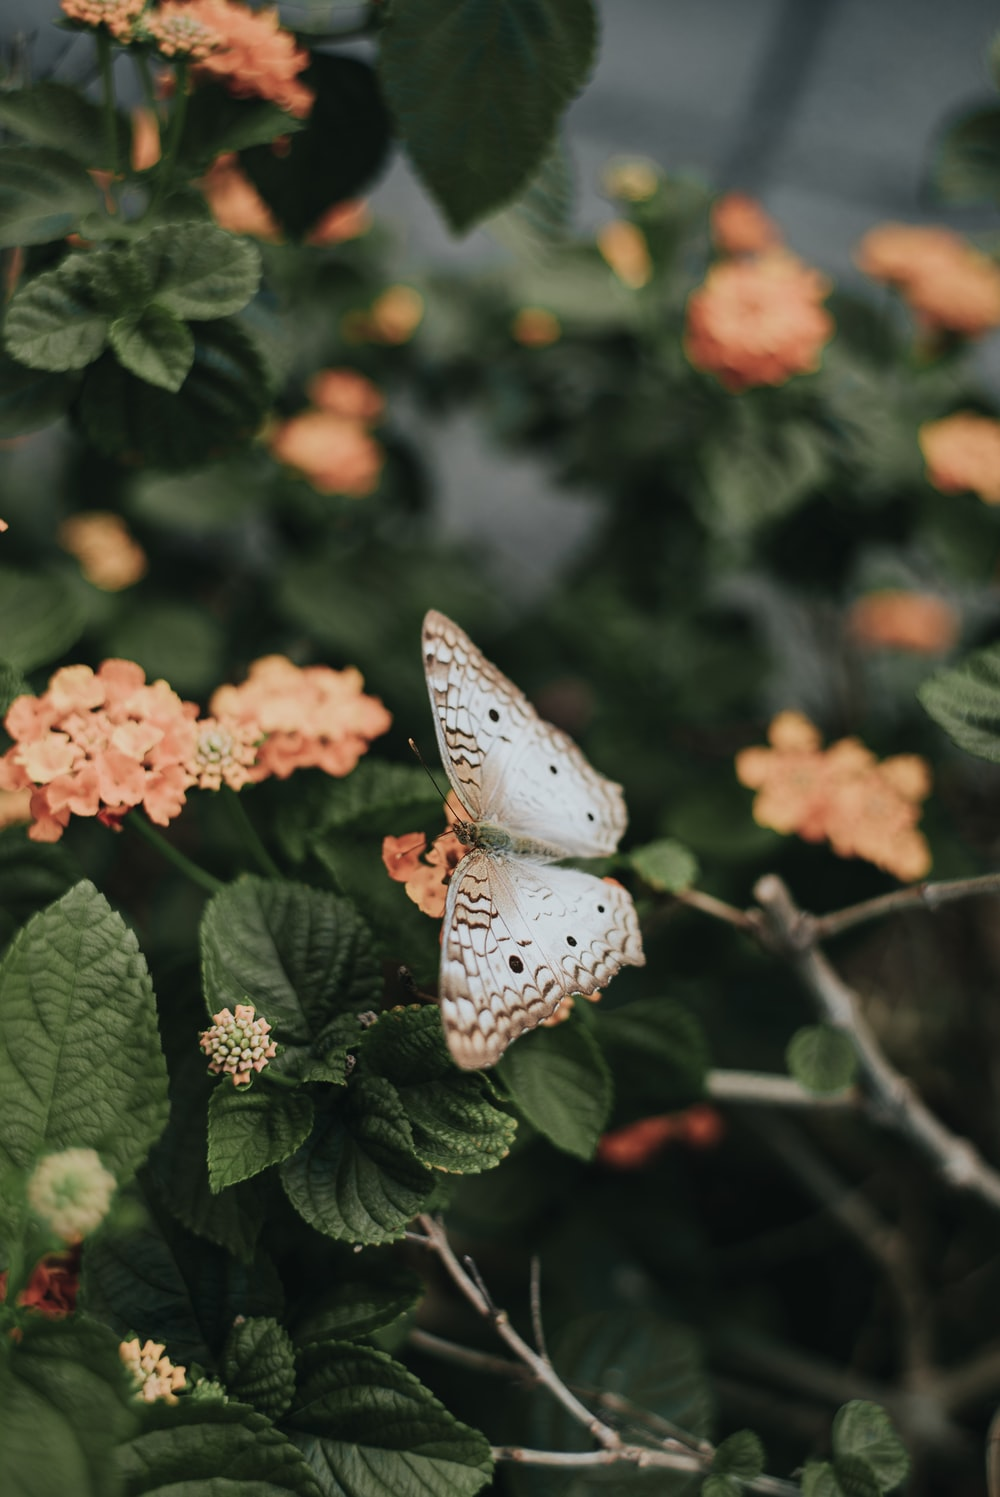 brown and white butterfly on orange flower